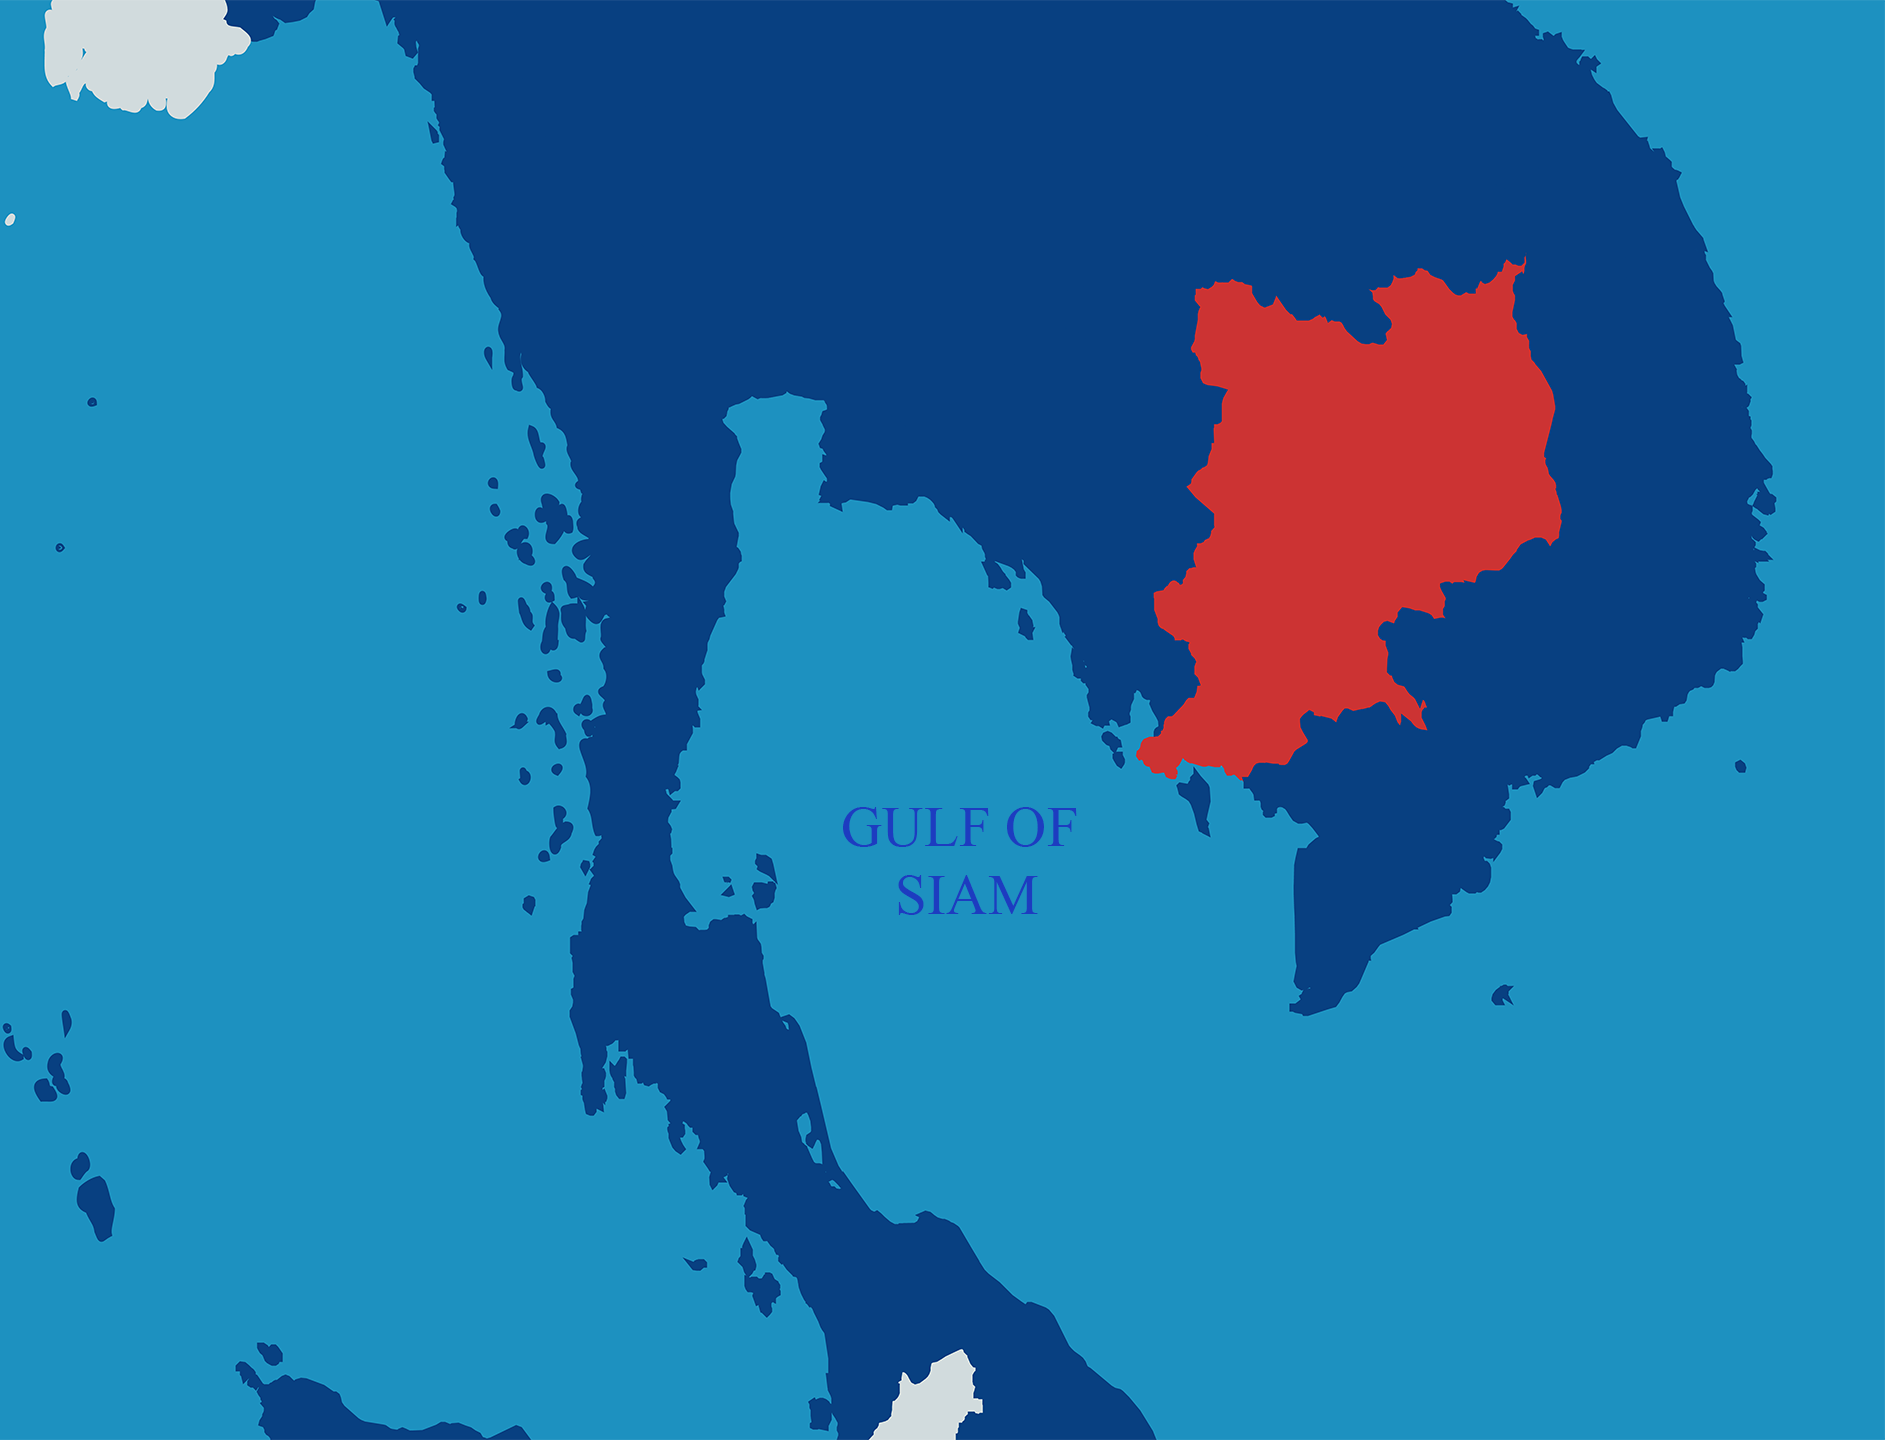 Battle of the Gulf of Siam